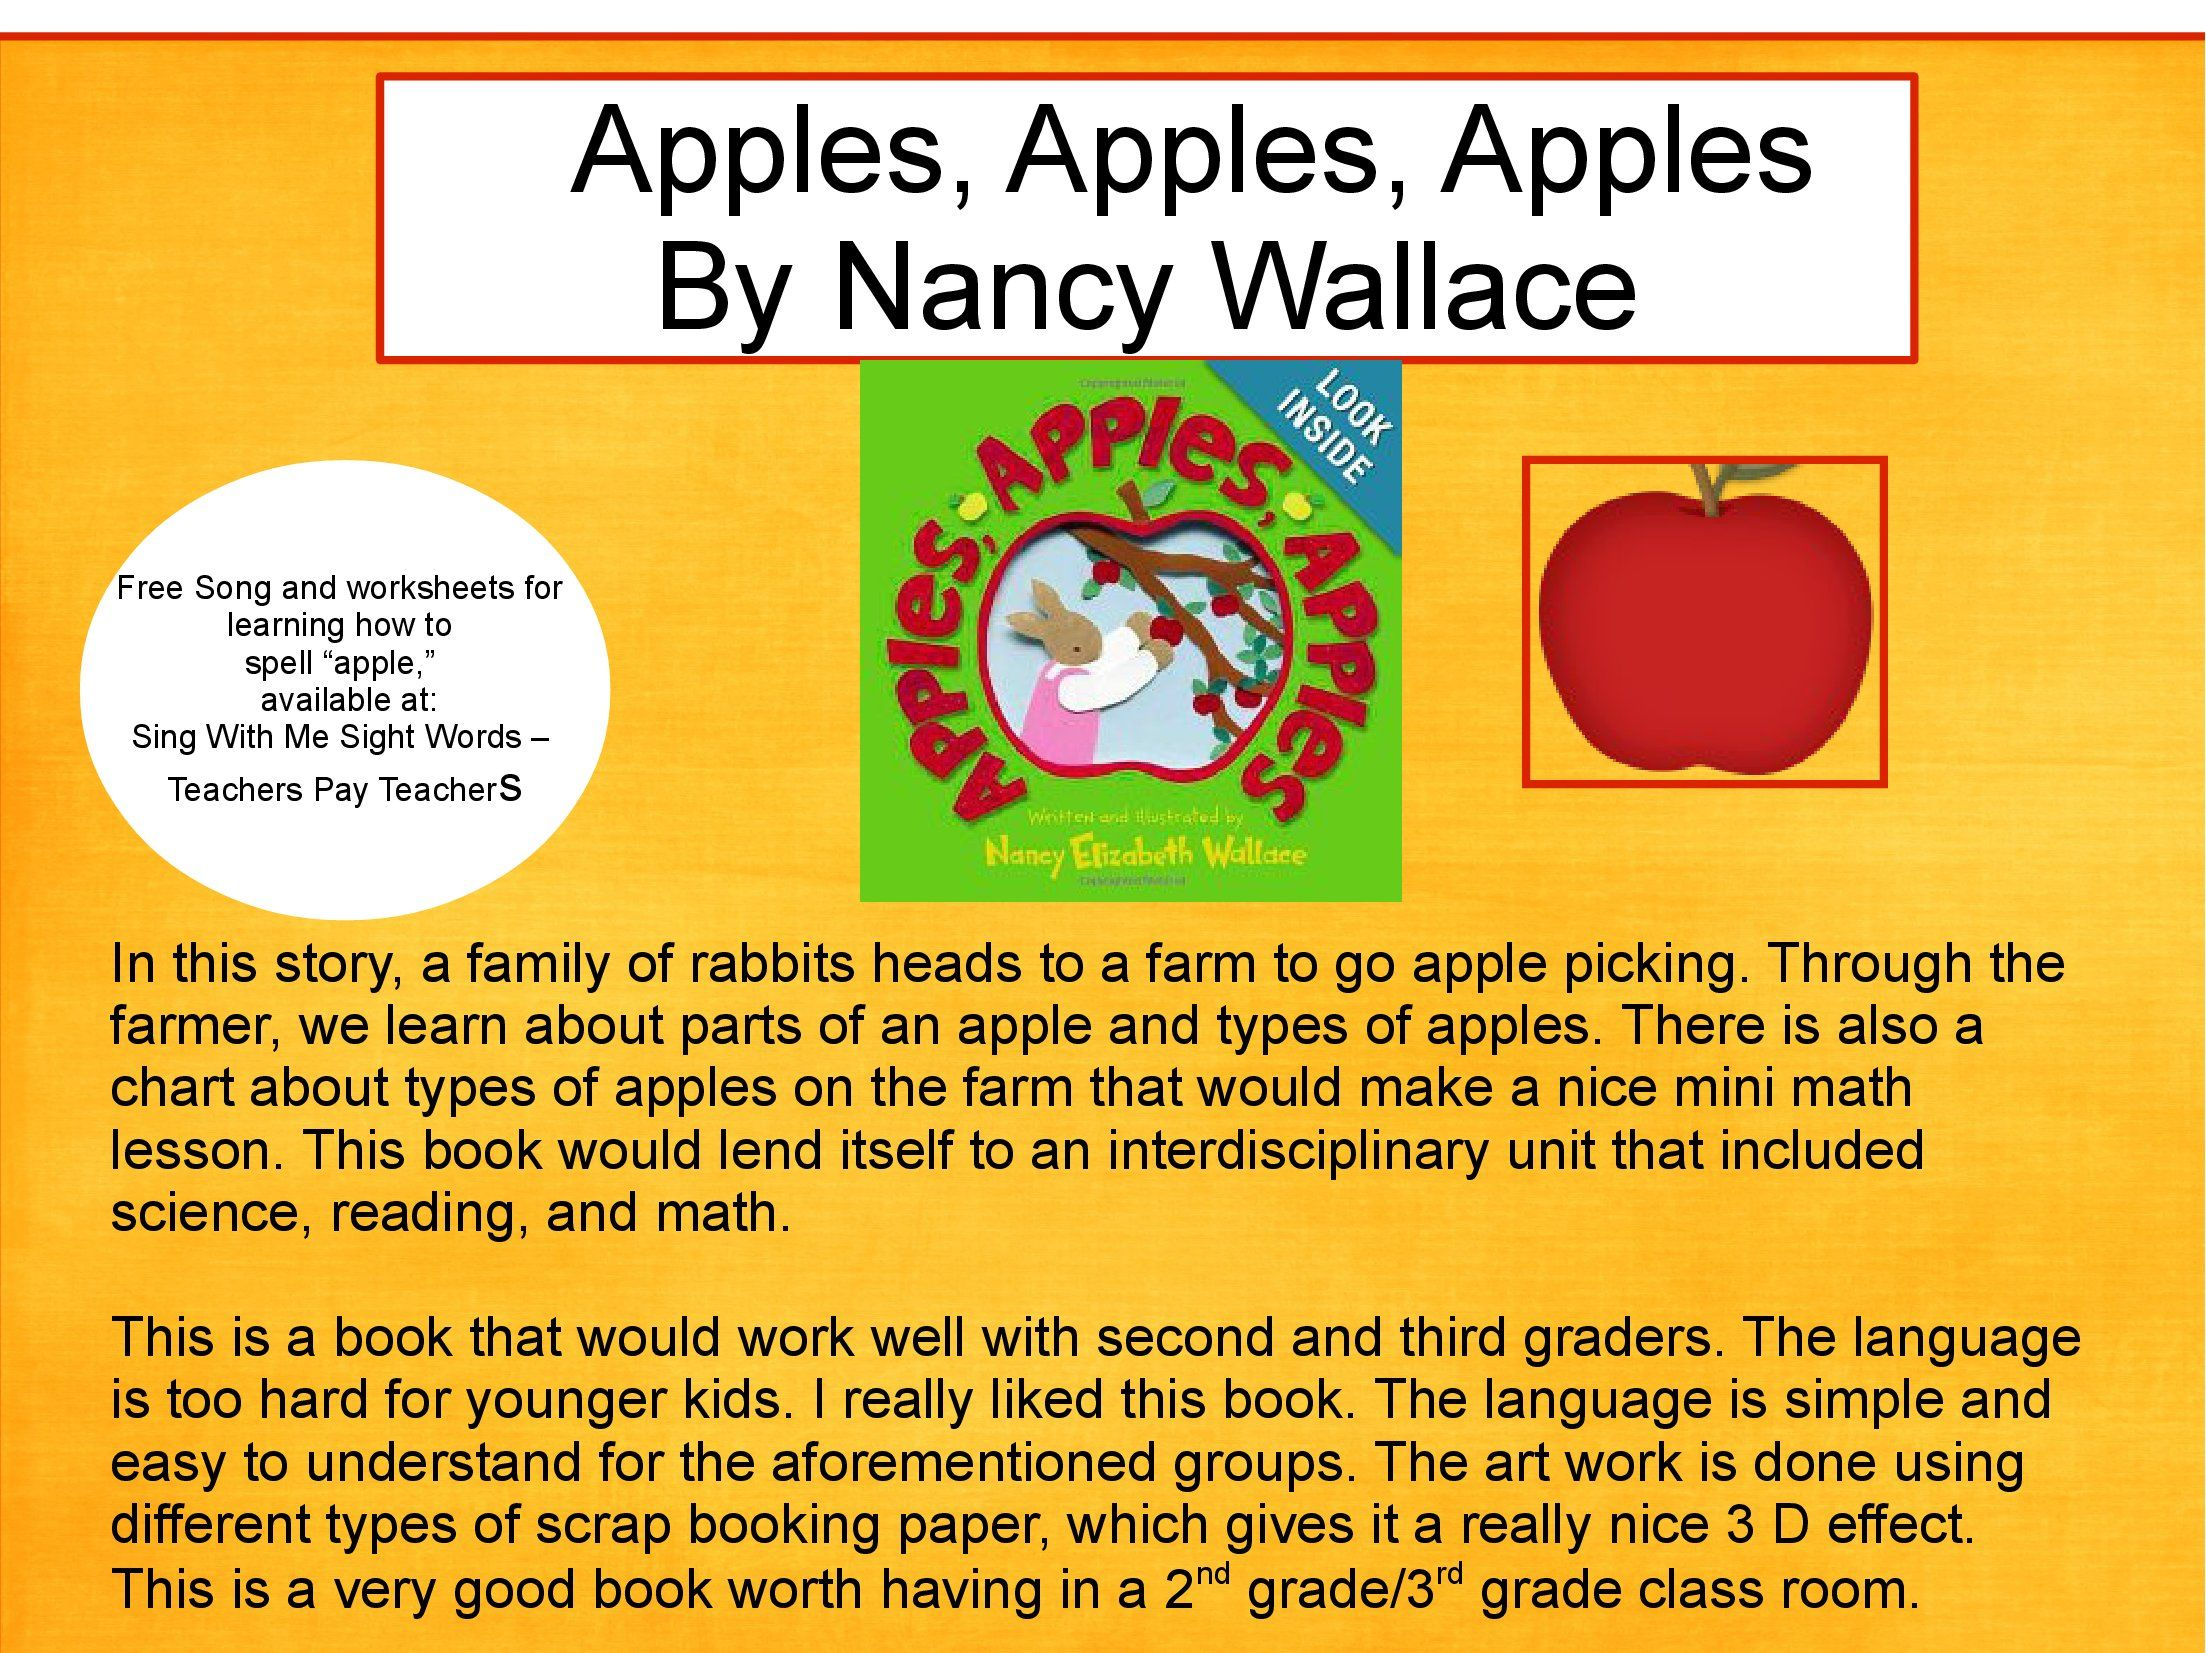 medium resolution of Book about apple picking for 2nd/3rd grade   Instructional planning